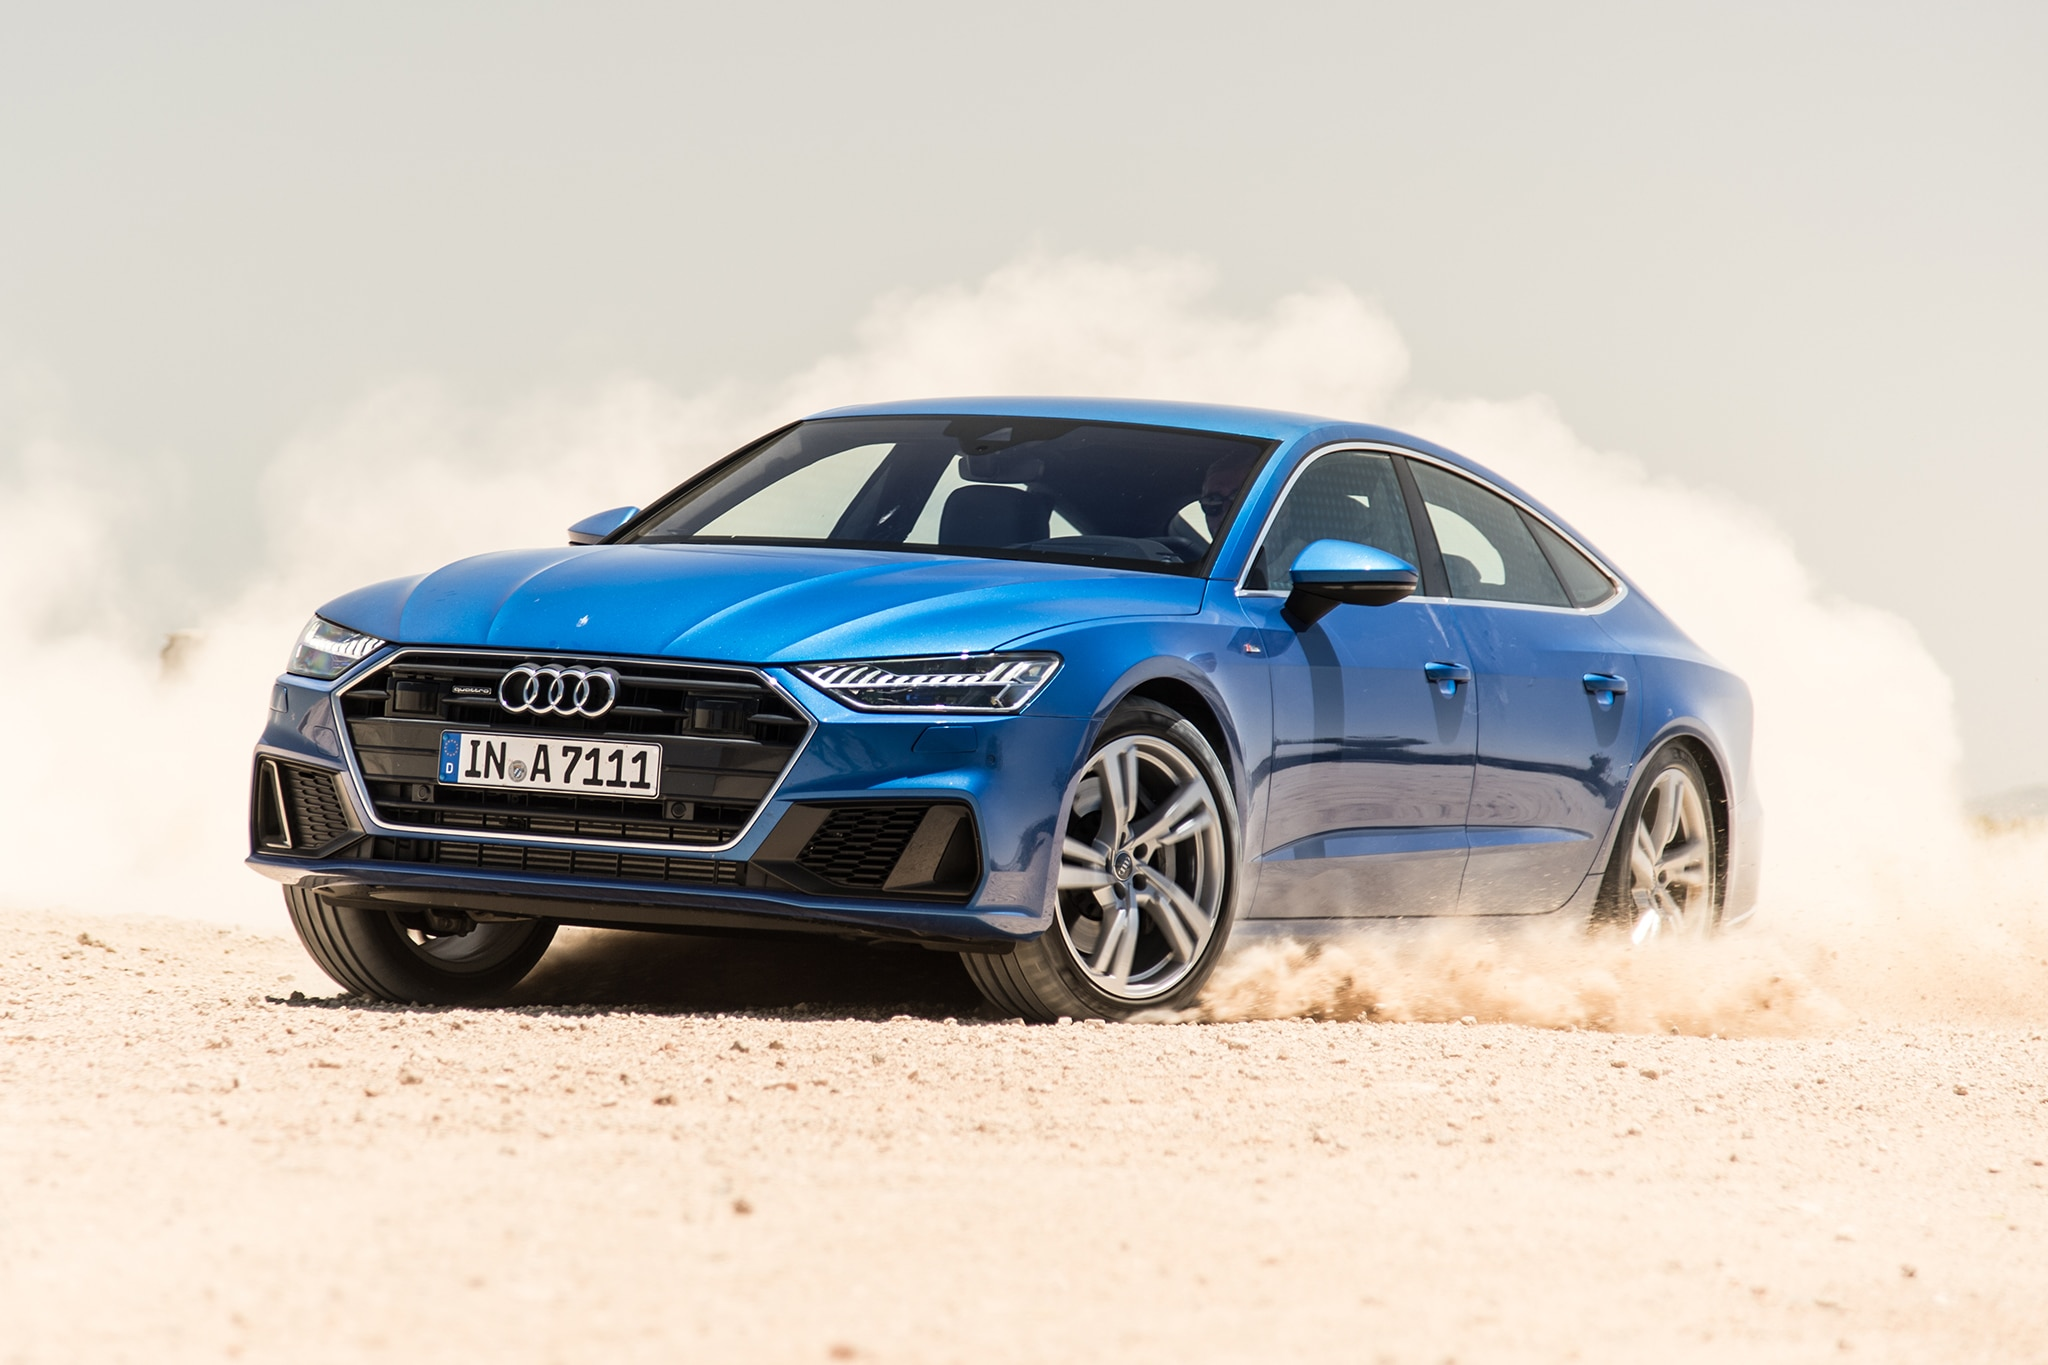 2019 Audi A7 Sportback Goes To Luderitz 72